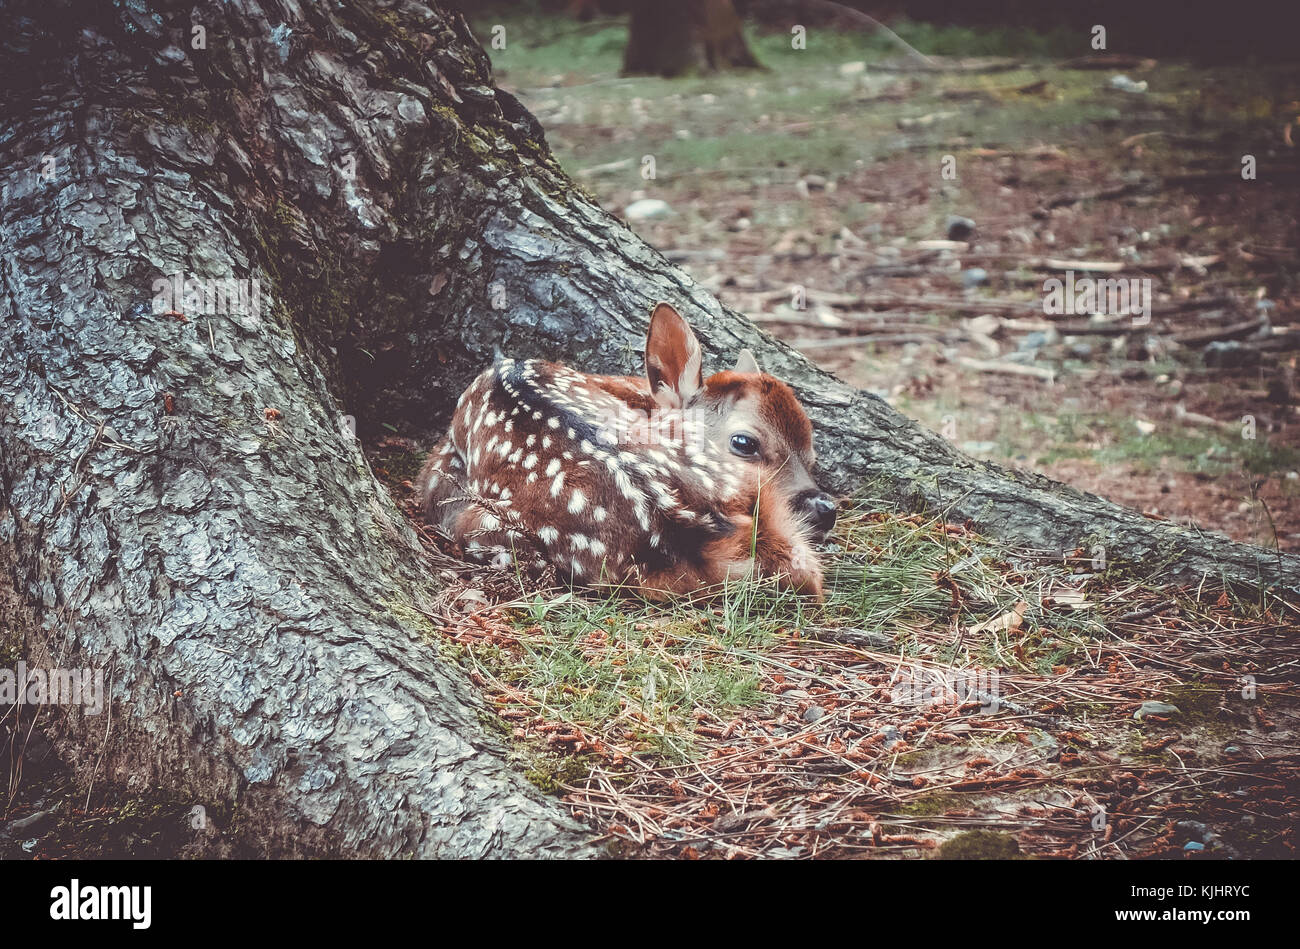 New born Sika fawn deer in Nara Park forest, Japan - Stock Image